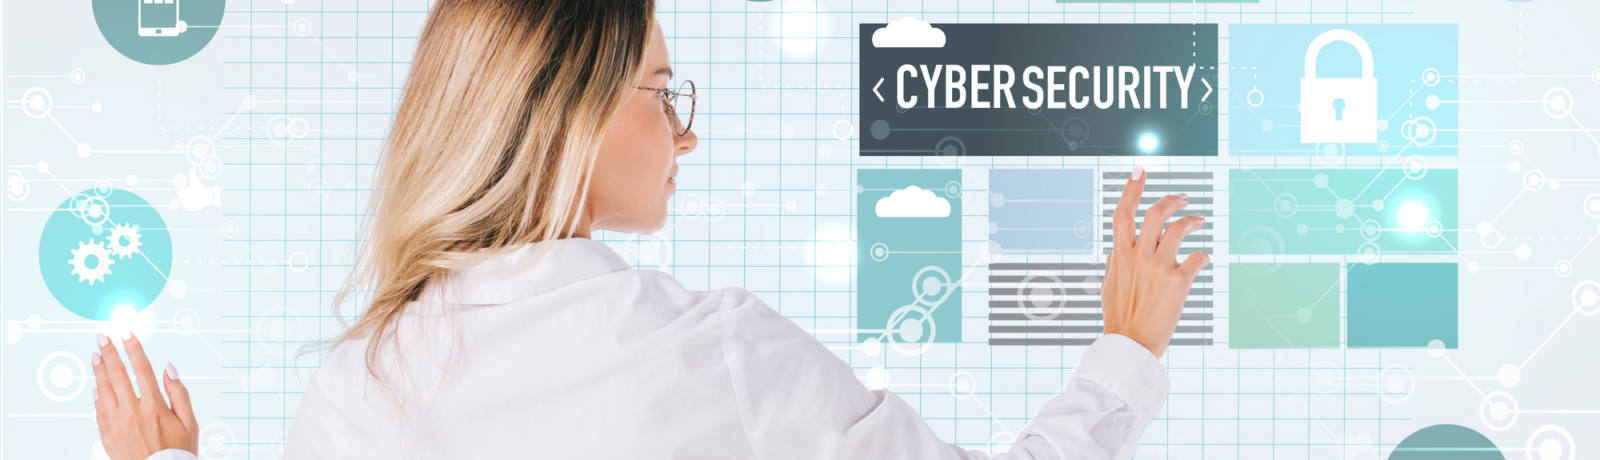 Woman in business attire accessing information about cybersecurity